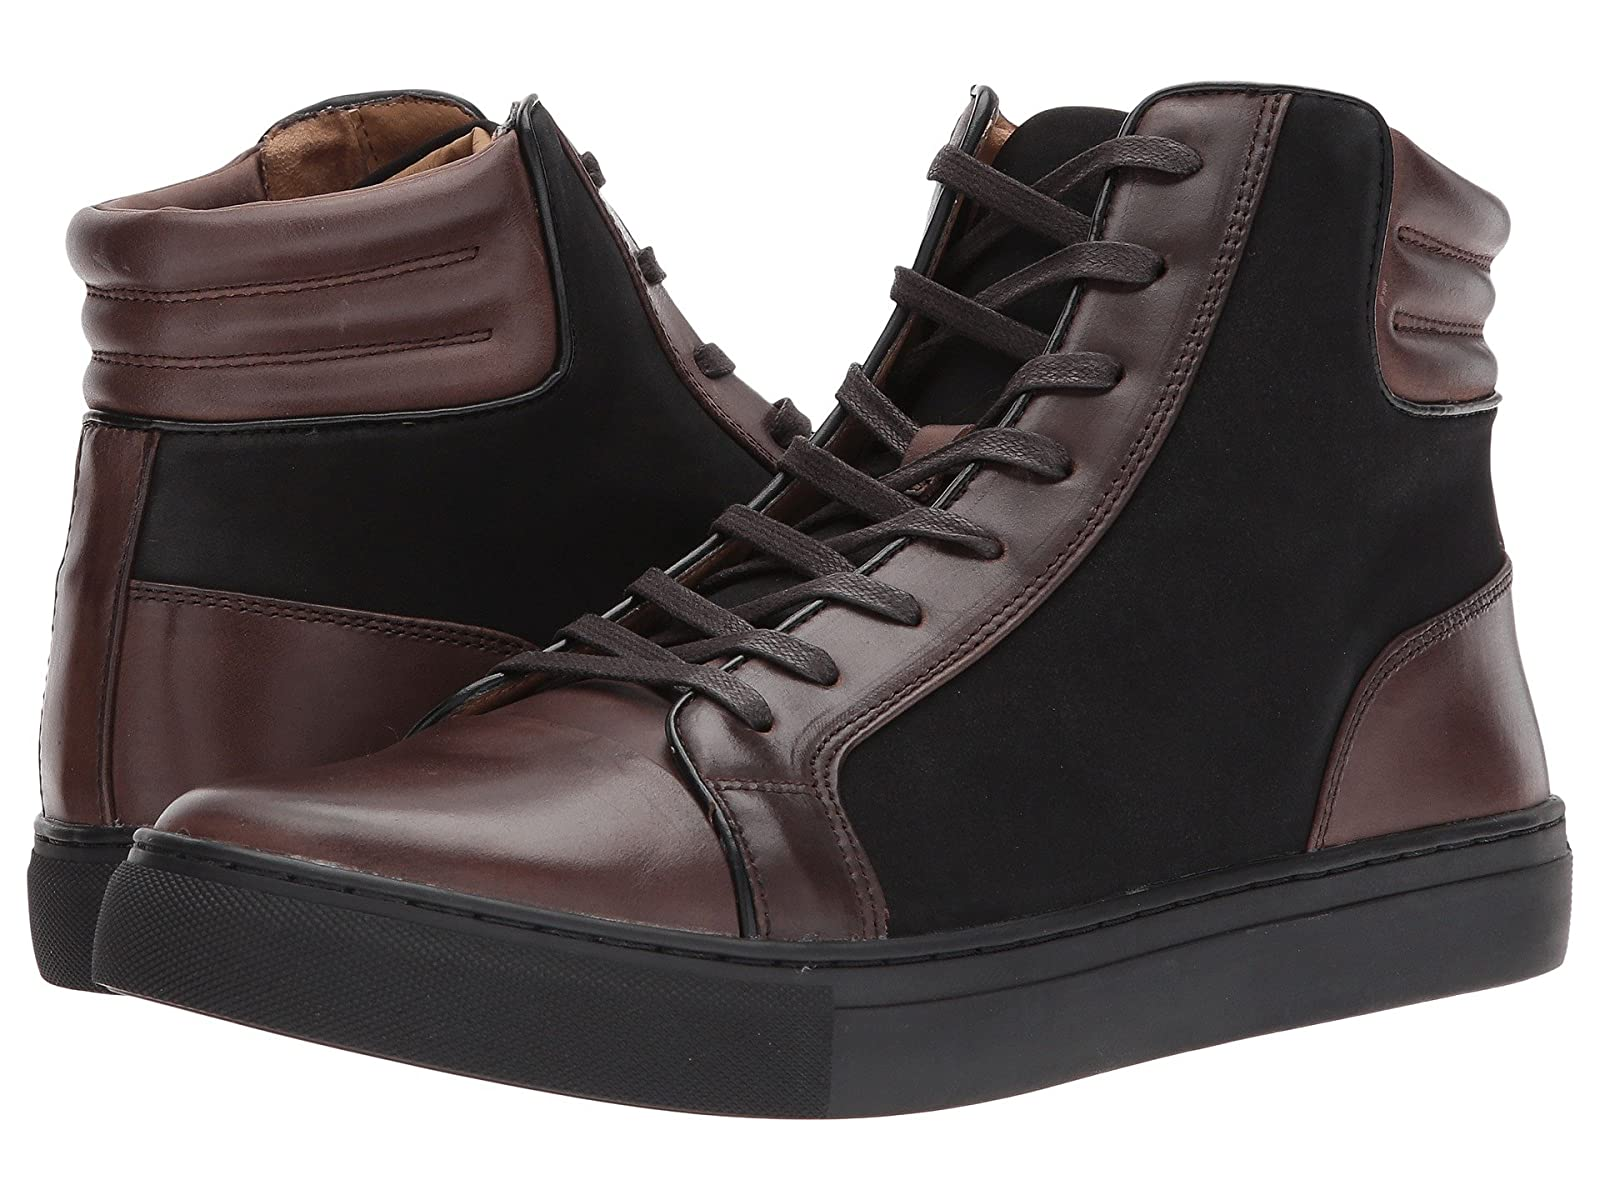 Kenneth Cole Reaction Design 20778Cheap and distinctive eye-catching shoes